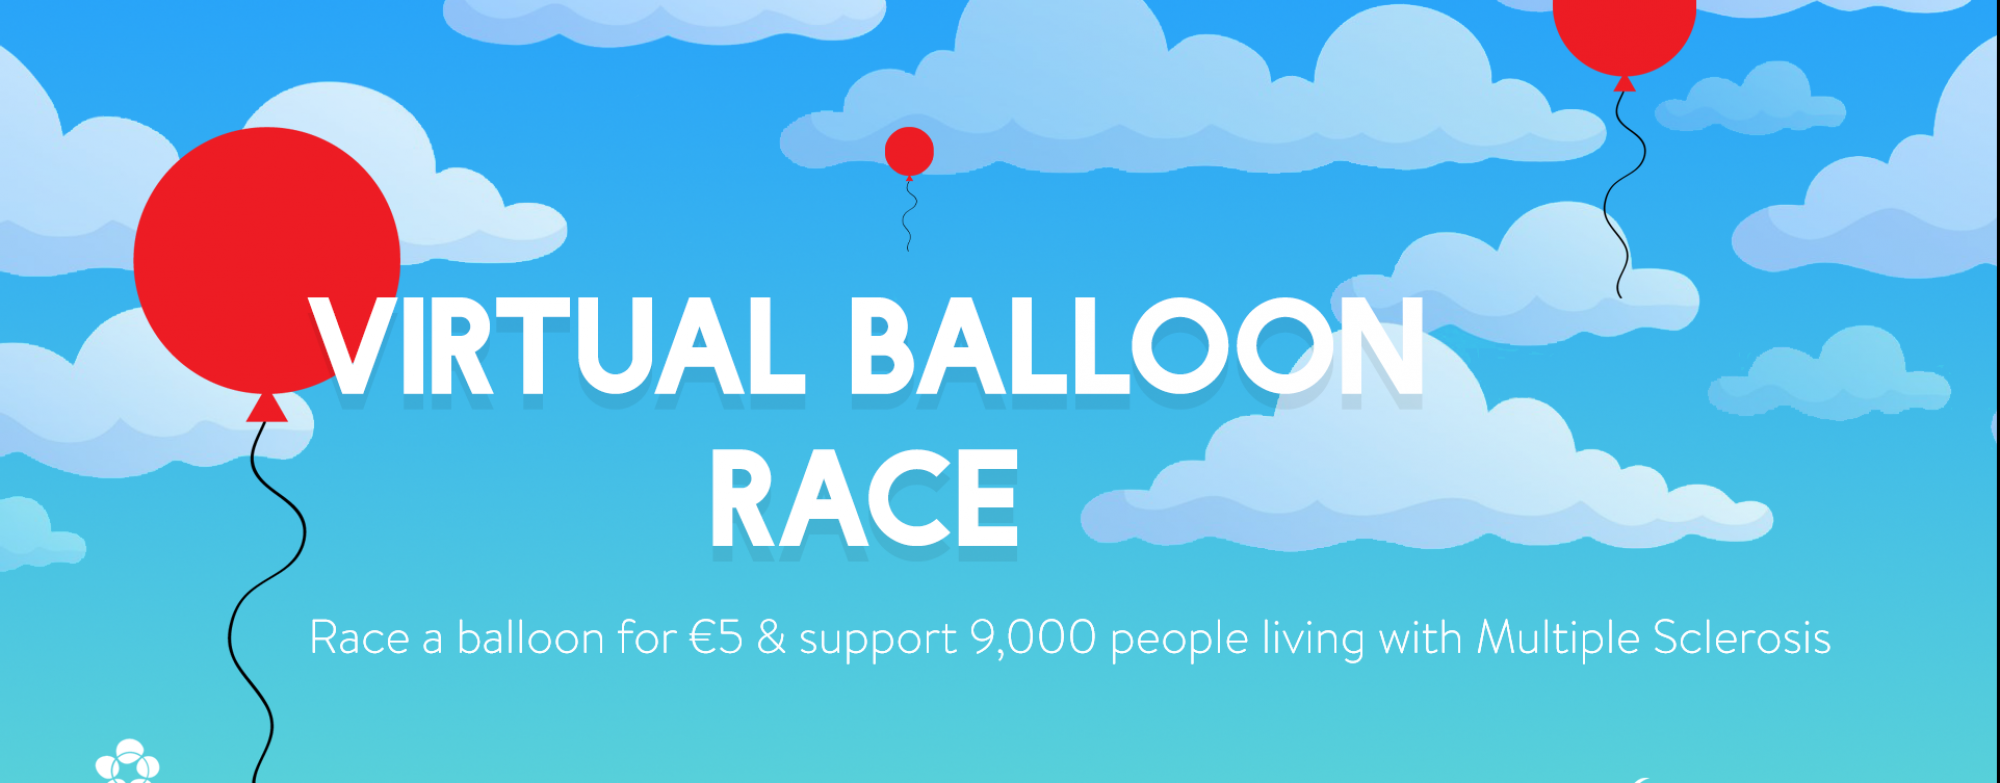 Virtual Balloon Race 2020